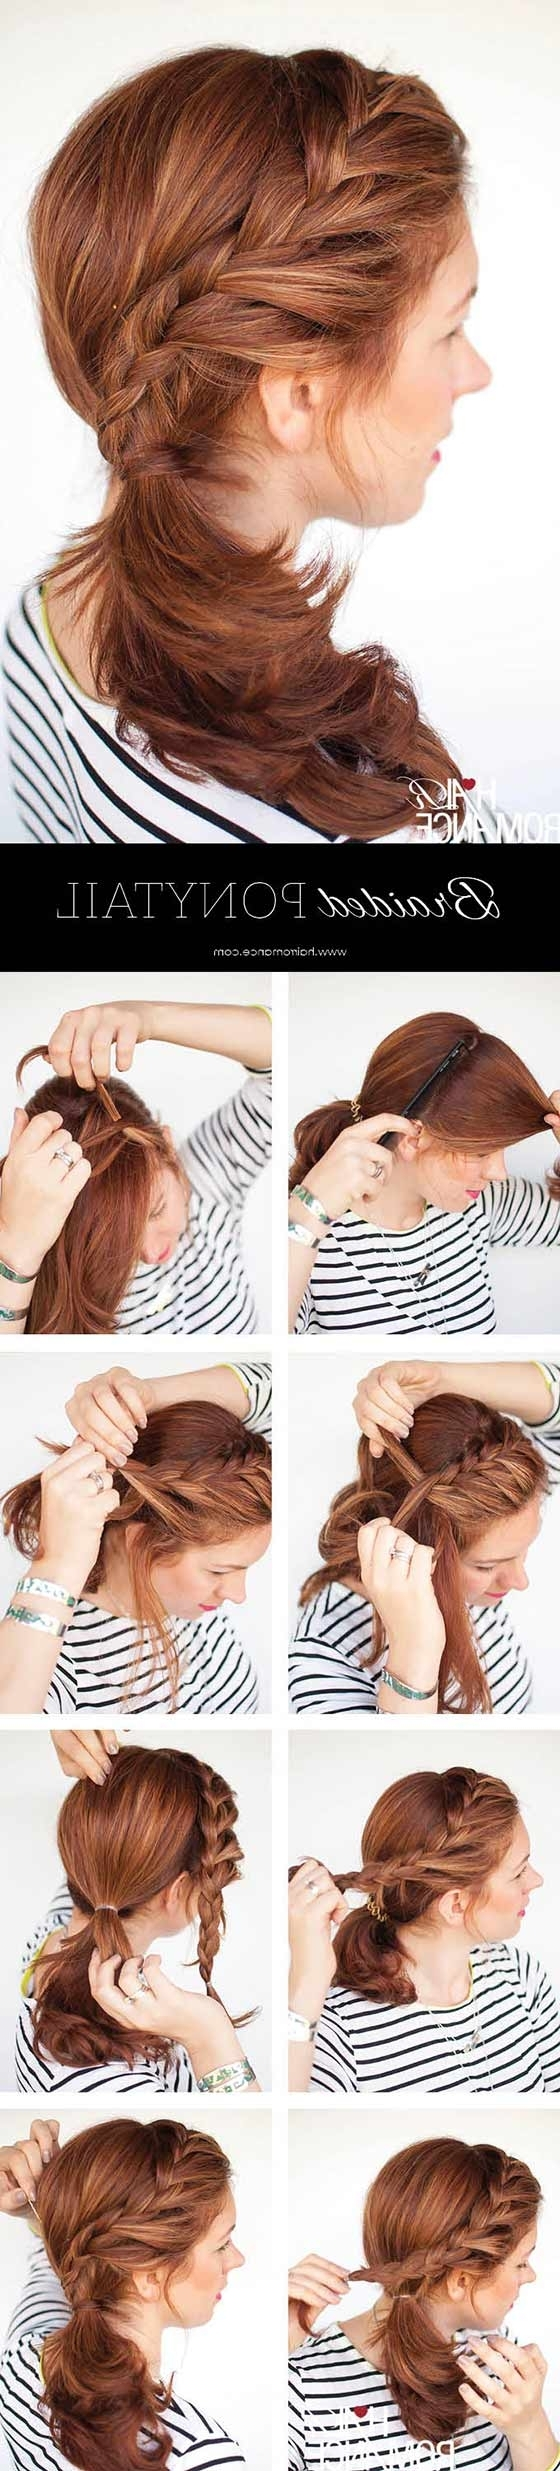 40 Braided Hairstyles For Long Hair With Regard To Well Known Loosely Braided Ponytail Hairstyles (View 11 of 20)